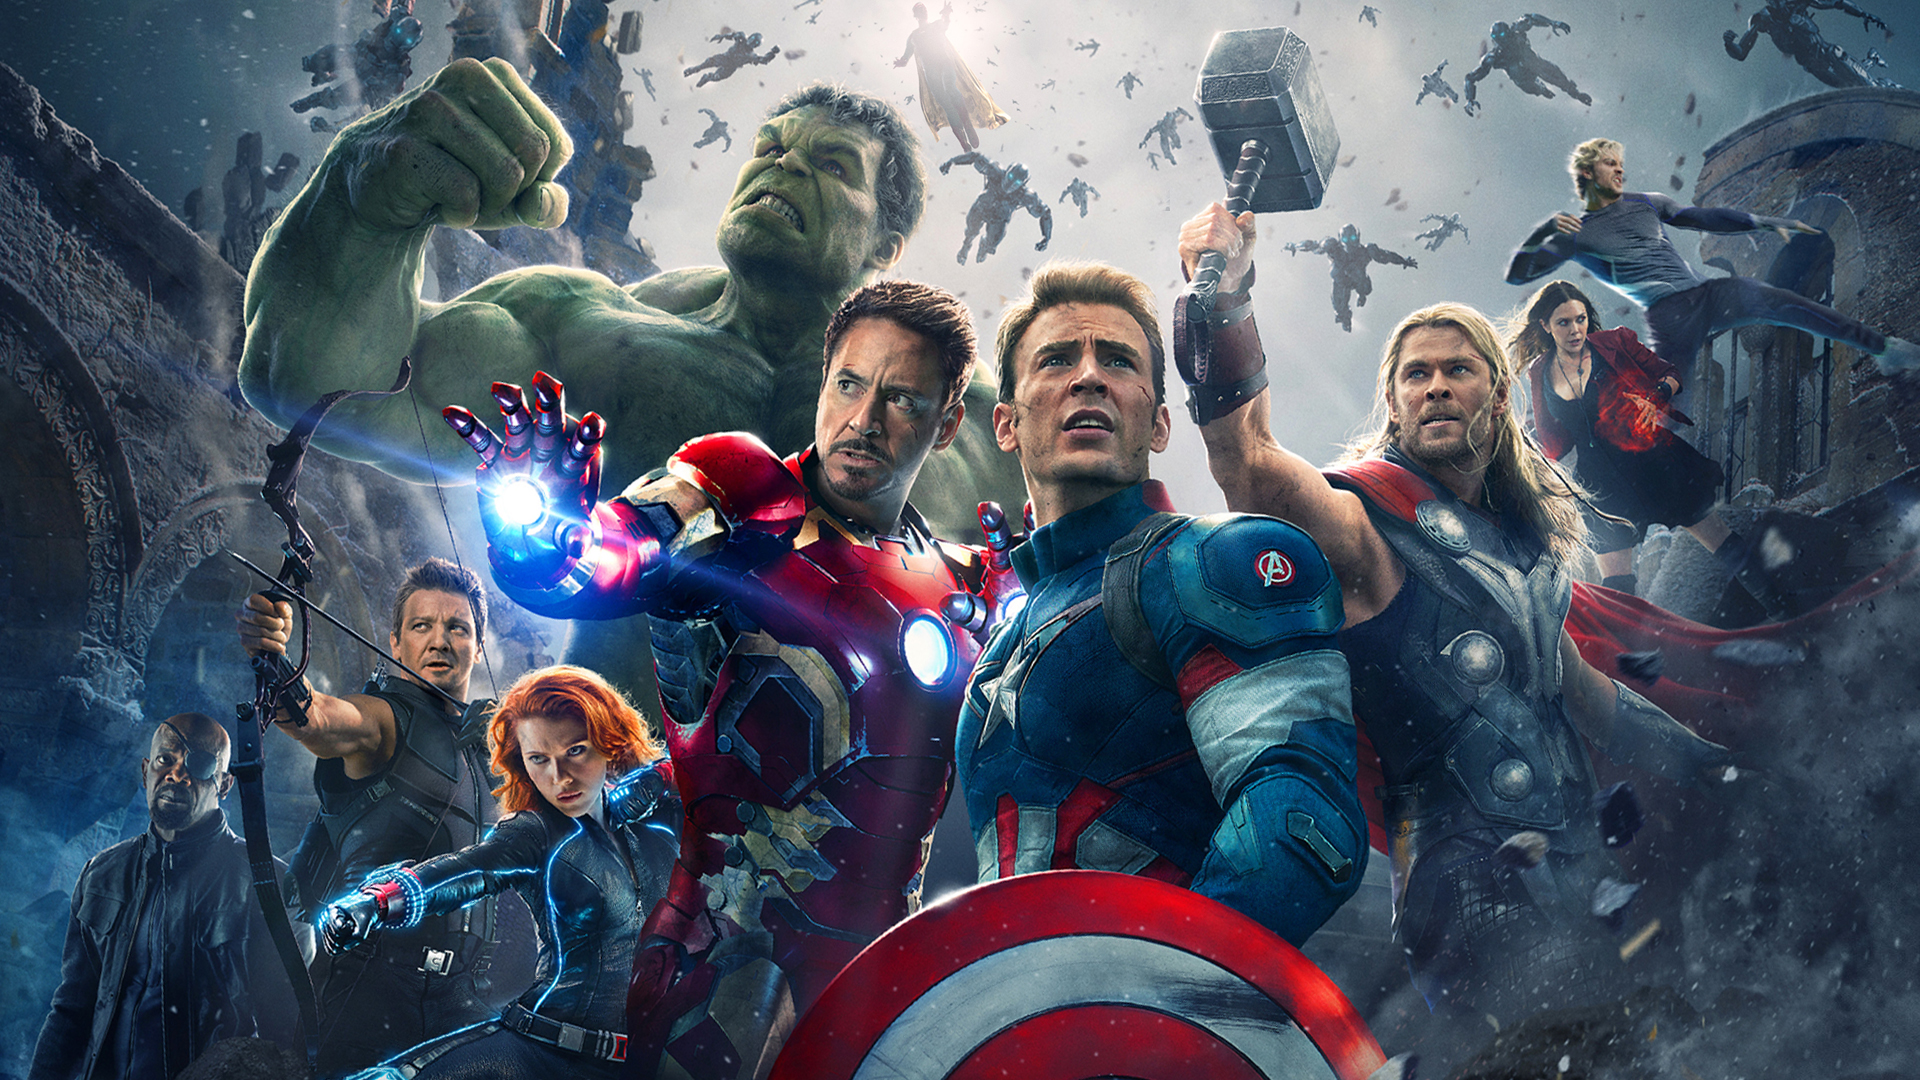 Avengers: Age of Ultron Wallpaper 1920x1080 by sachso74 on DeviantArt